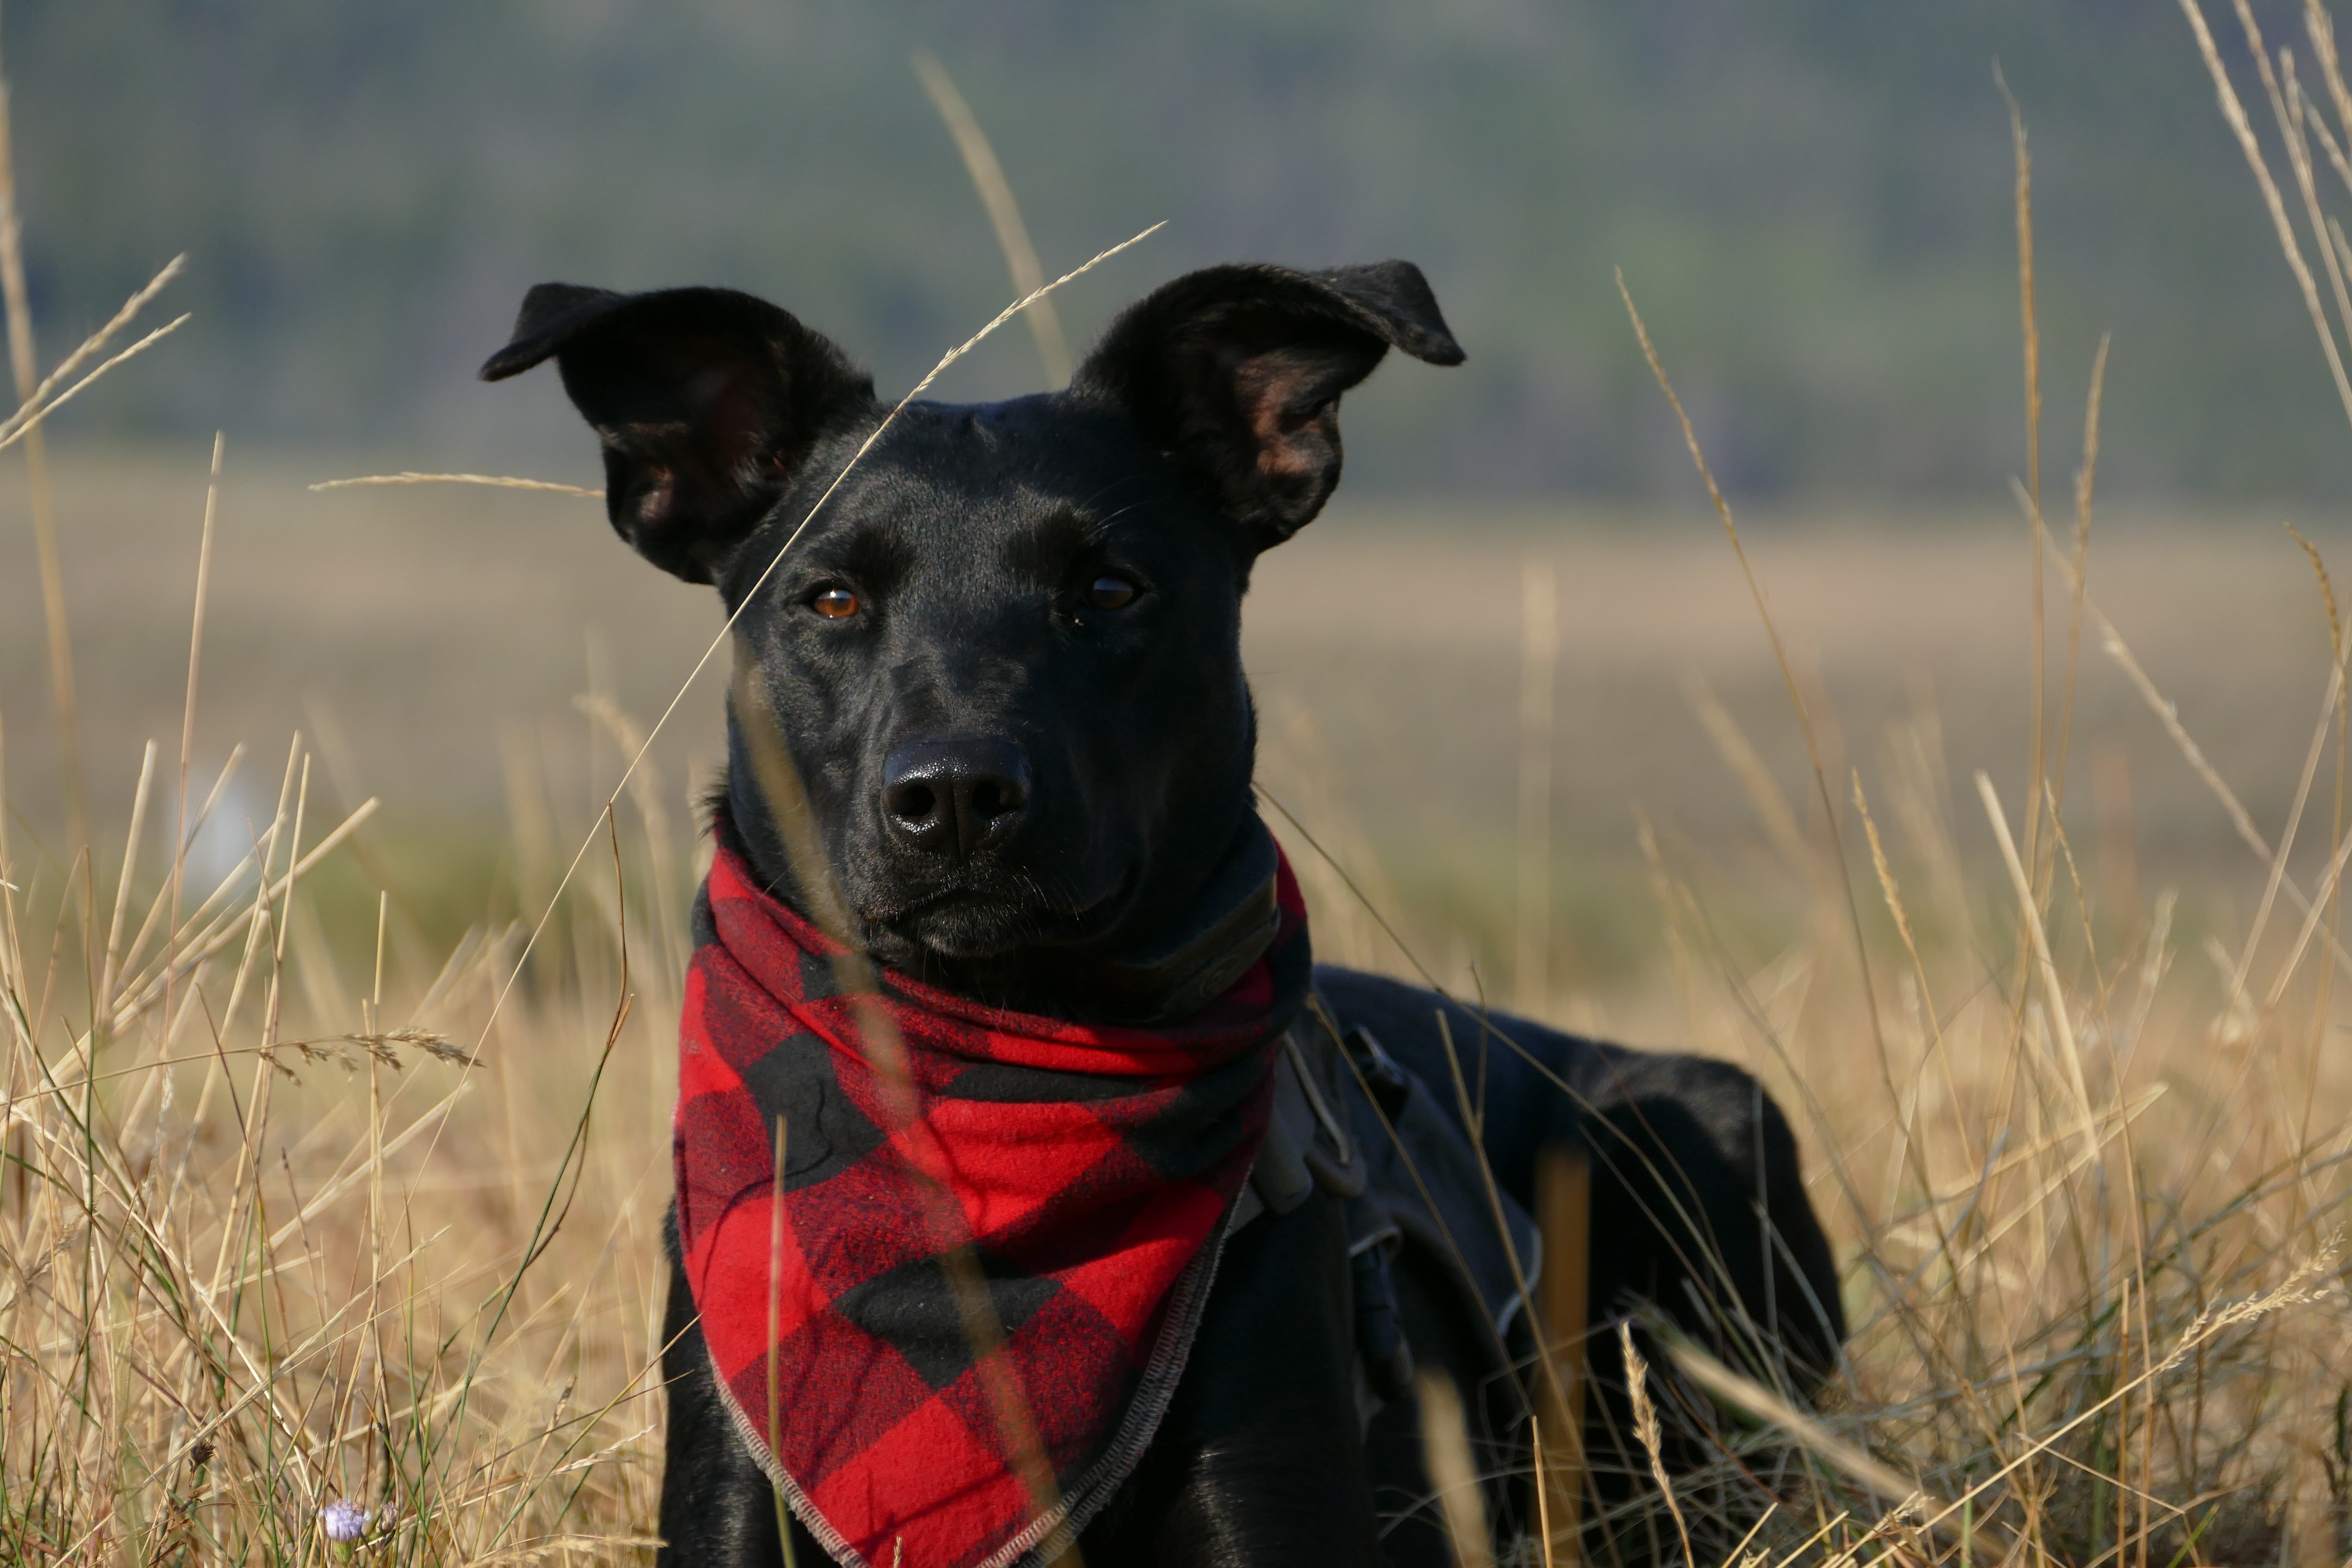 black dog with scarf standing on grass field